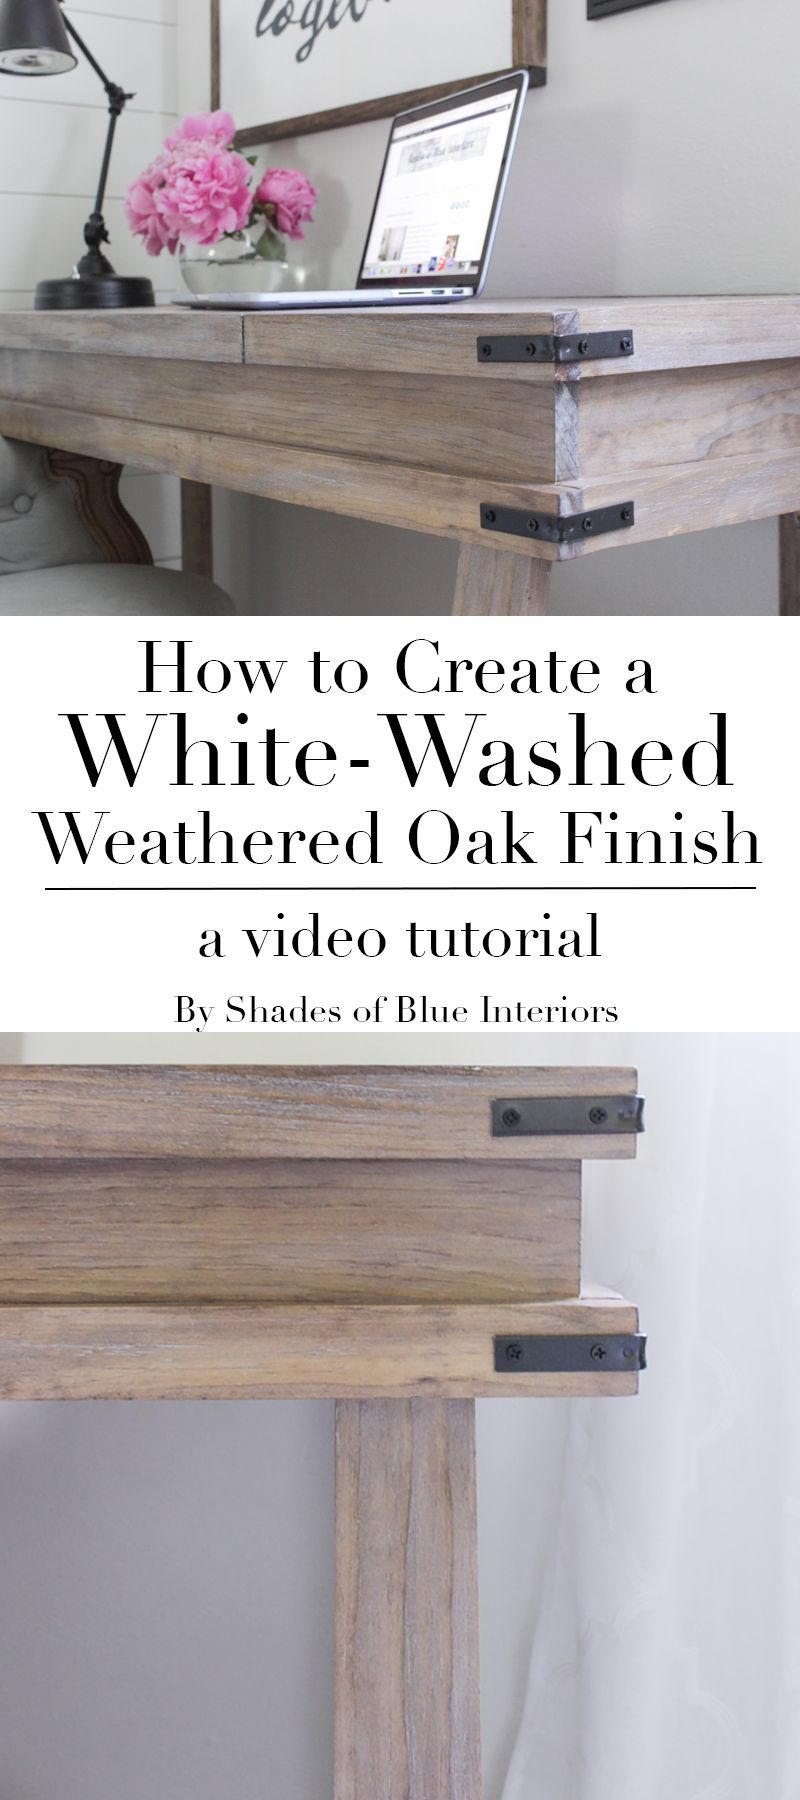 How To Achieve A White Washed Weathered Oak Finish On Plain Smooth Pine By Creating Raised Grain Staining And Sealing Then Using Wax